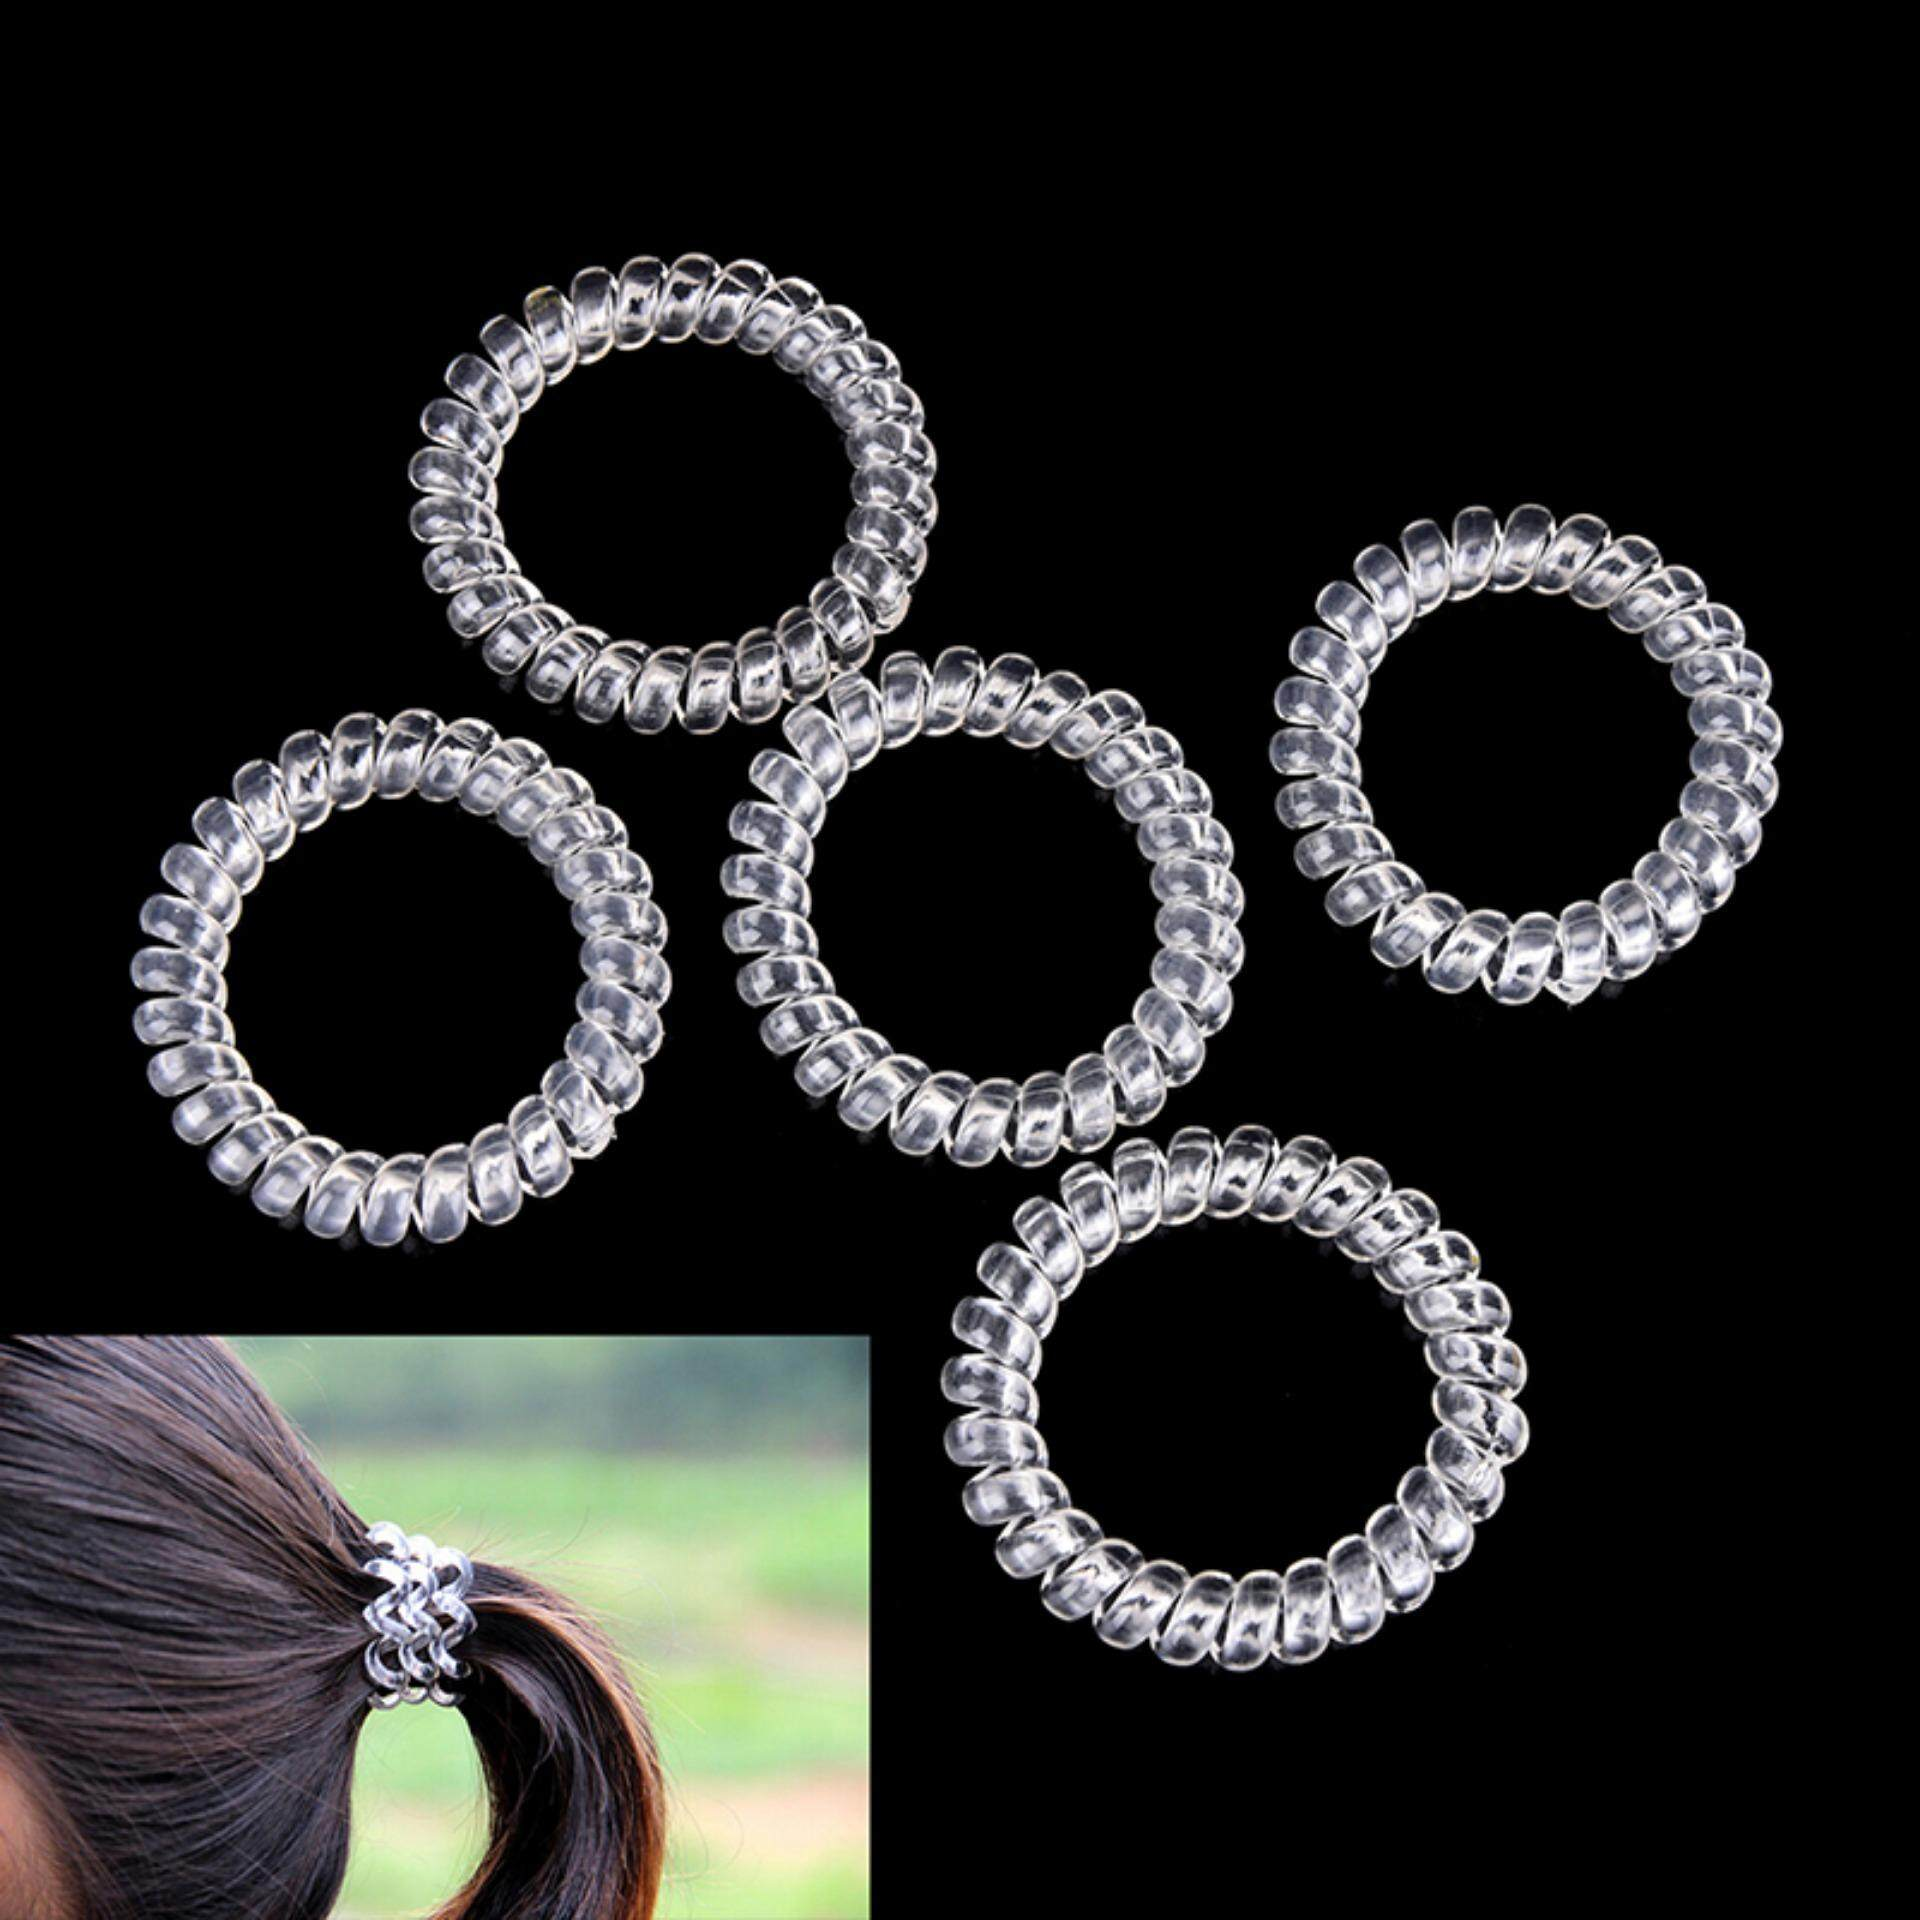 5pcs Lady Girl Clear Elastic Rubber Hair Ties Spiral Slinky Rubber Rope  Hairband - intl ab32582ec00